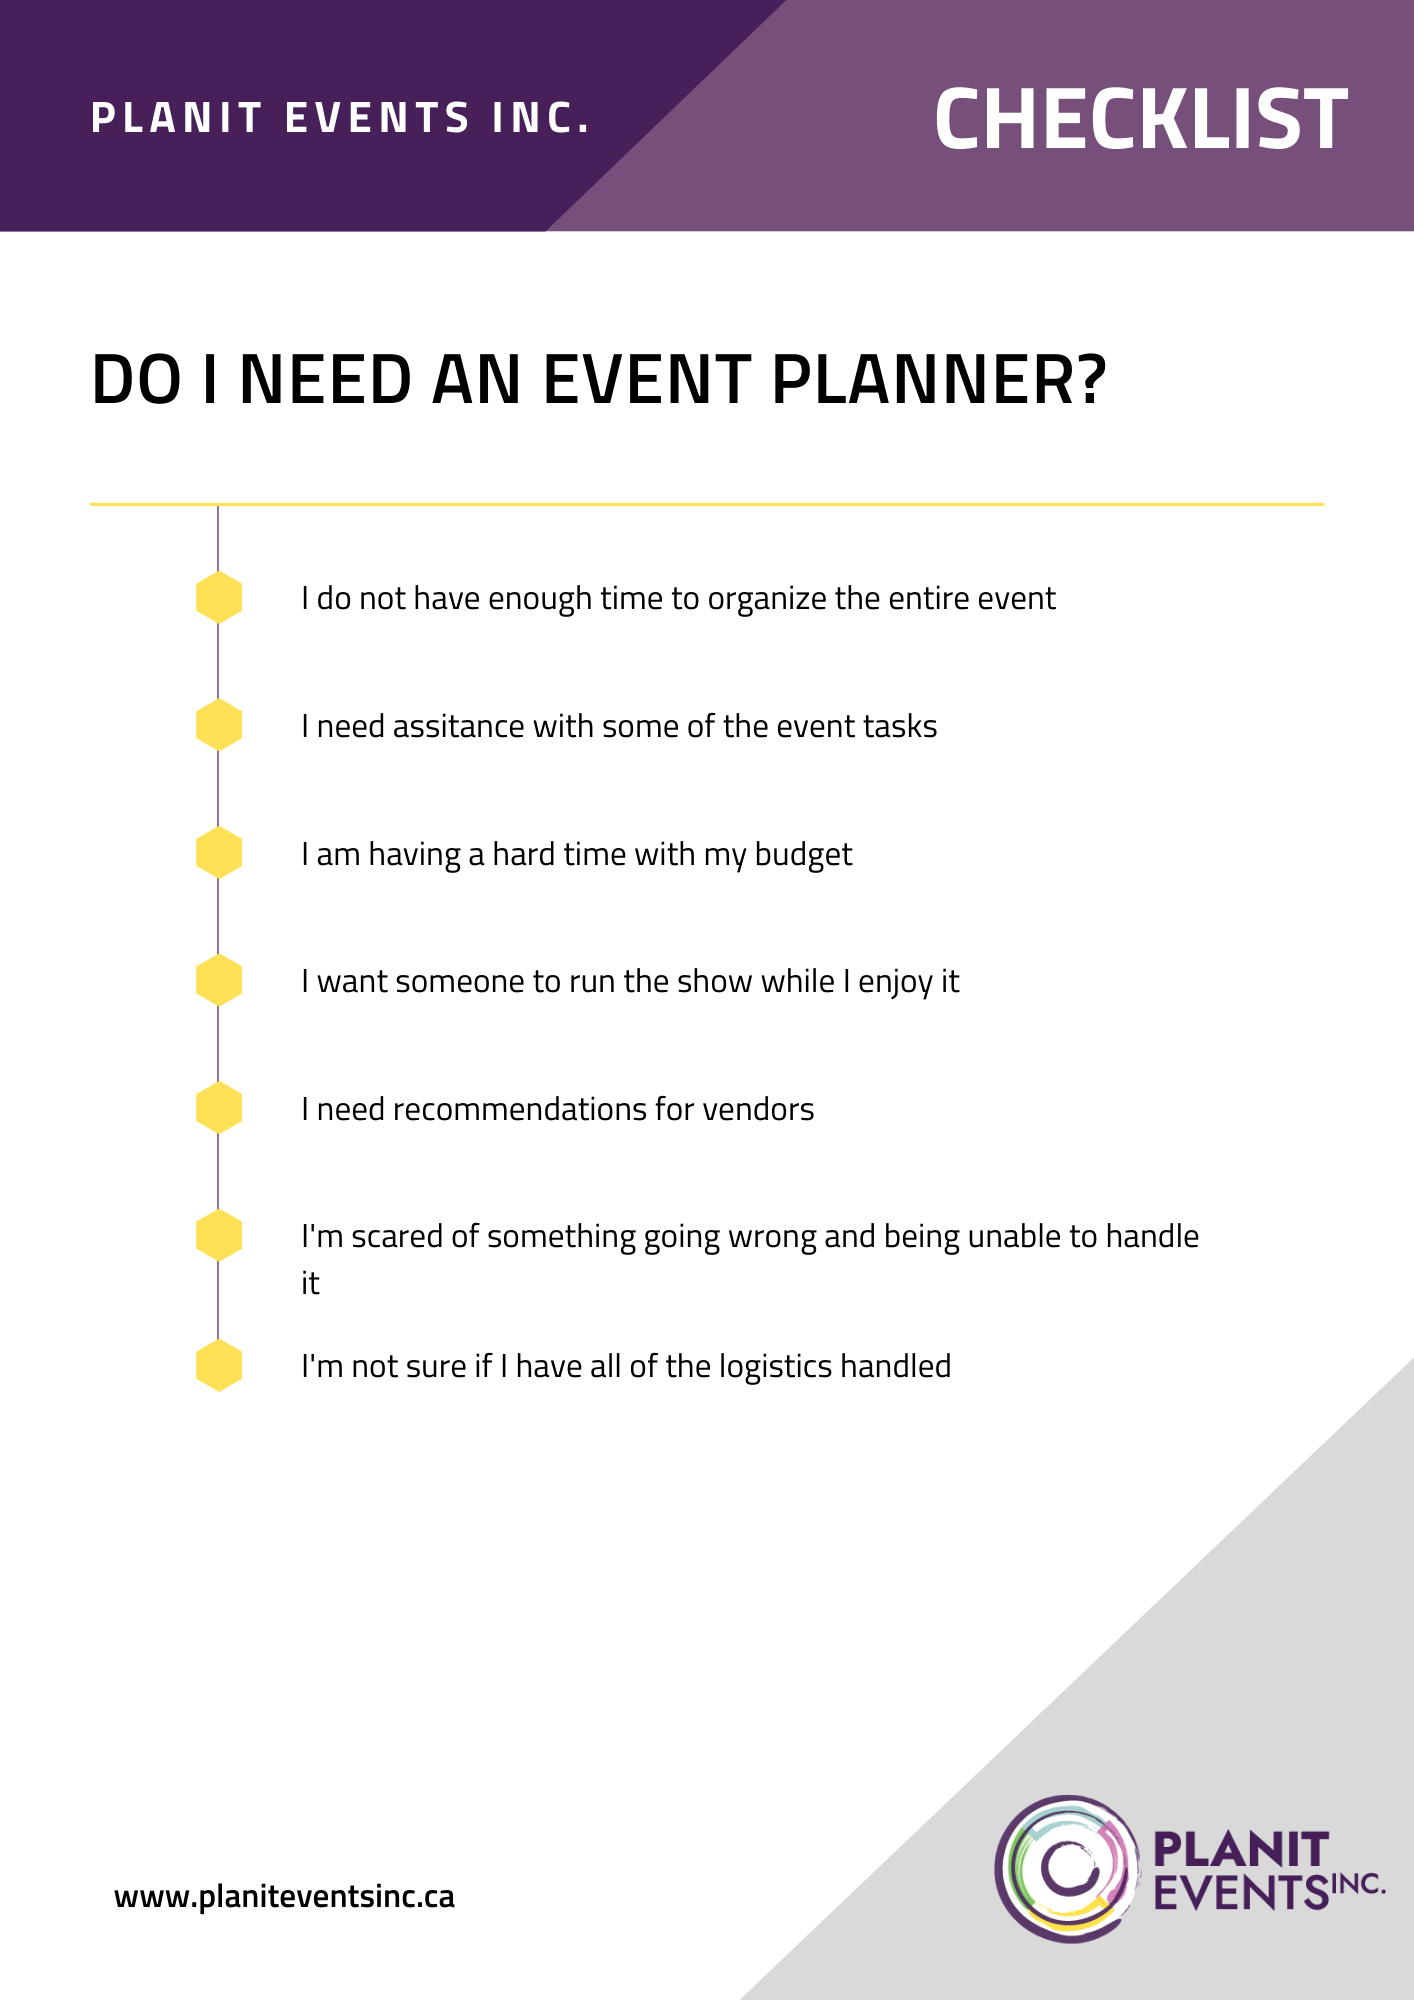 Do I Need an Event Planner Checklist